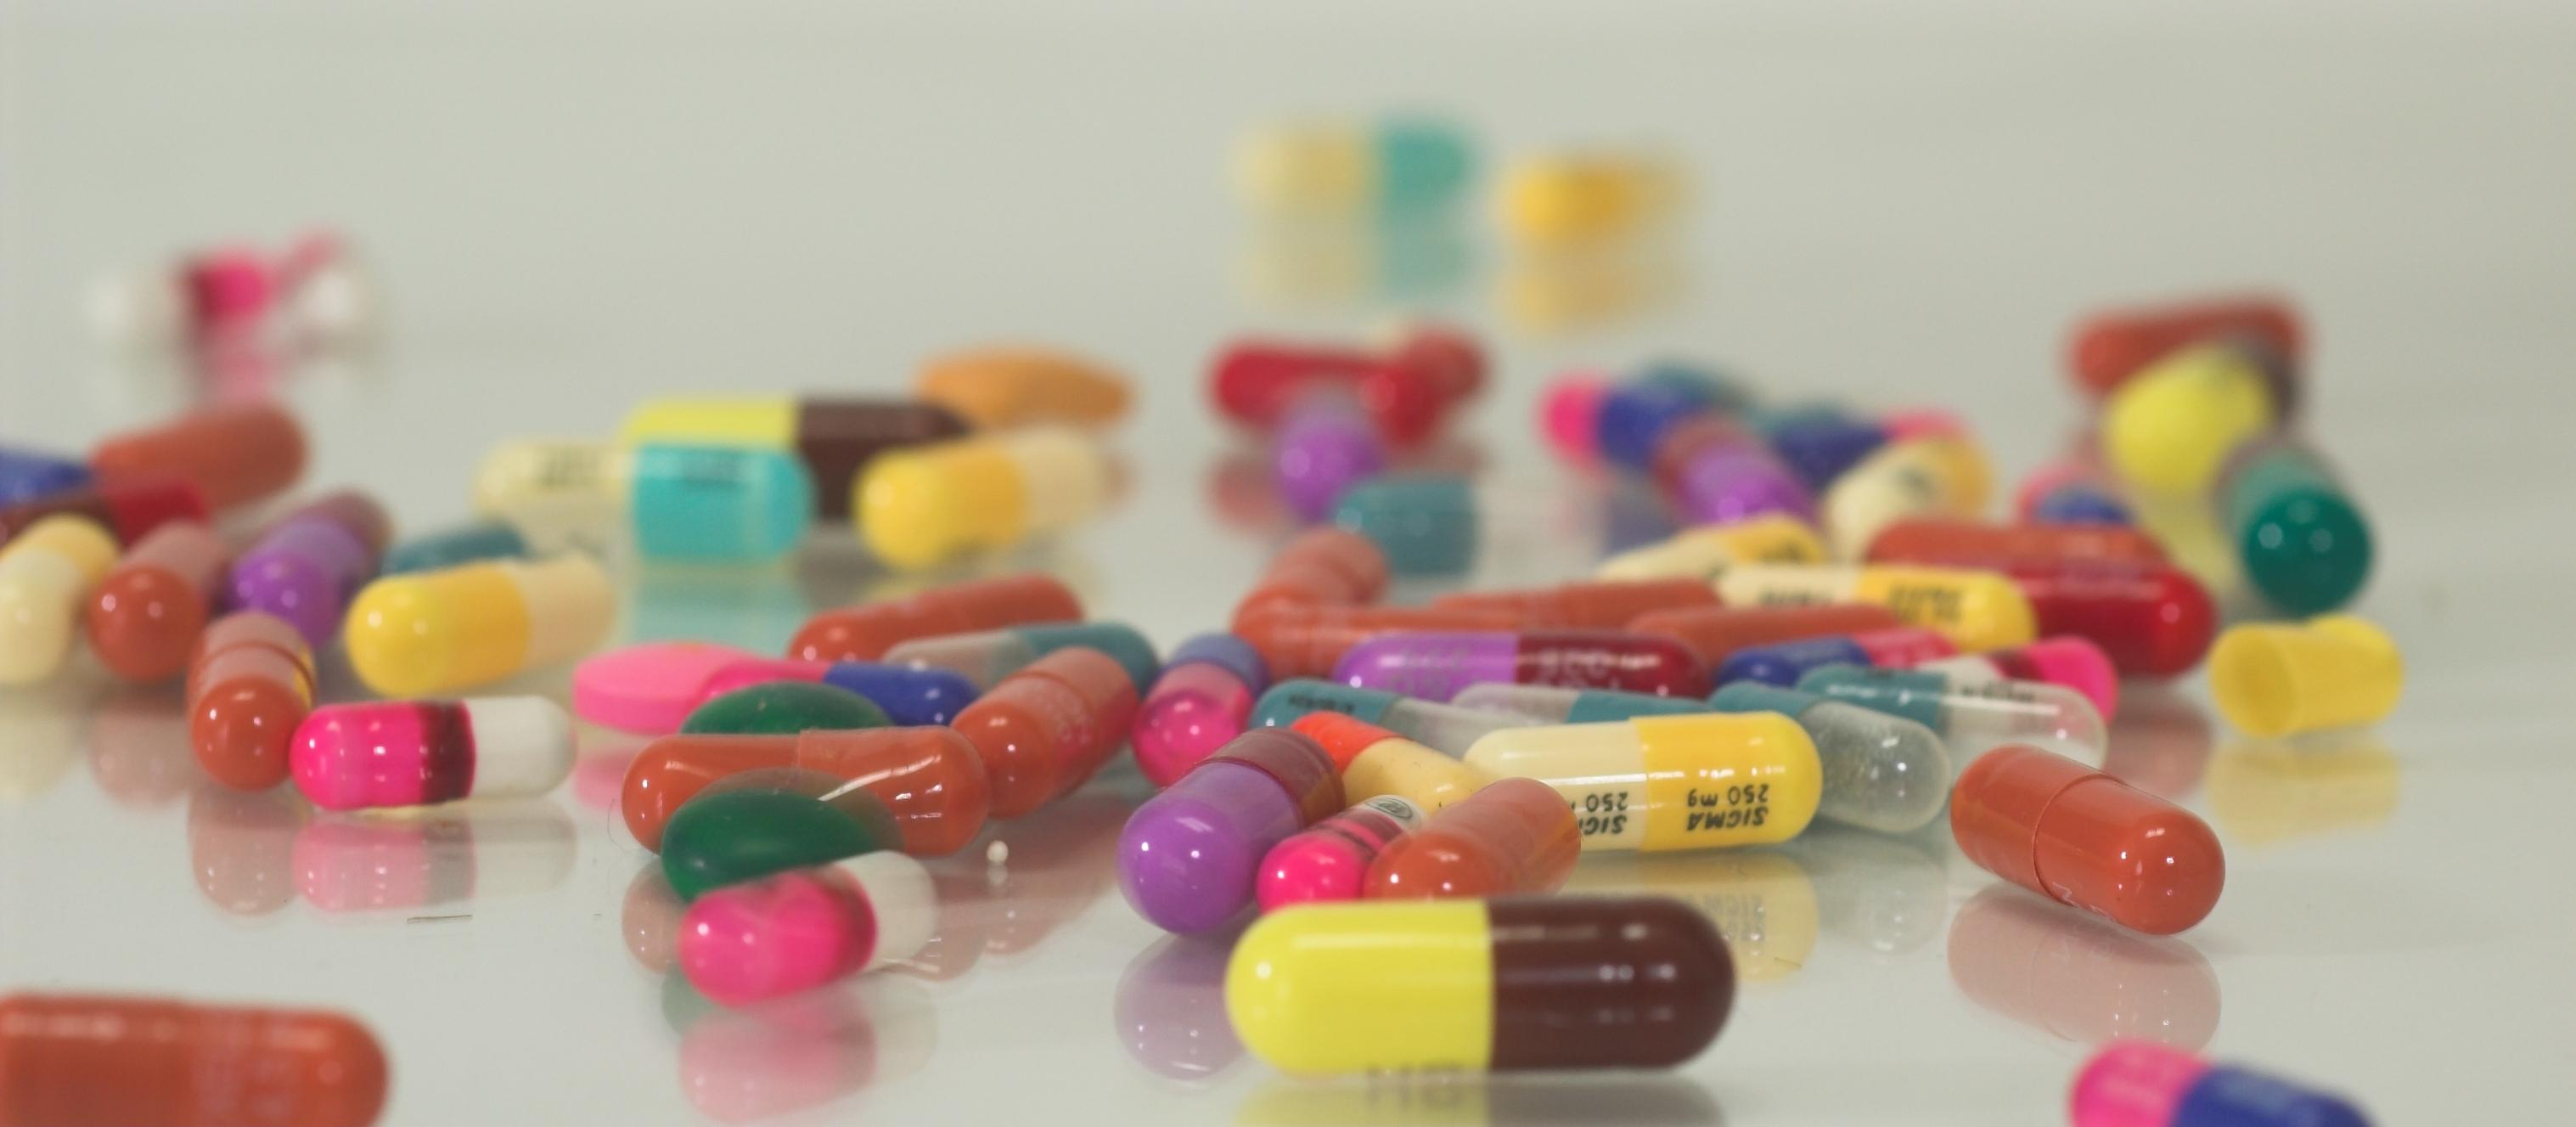 Colourful pills